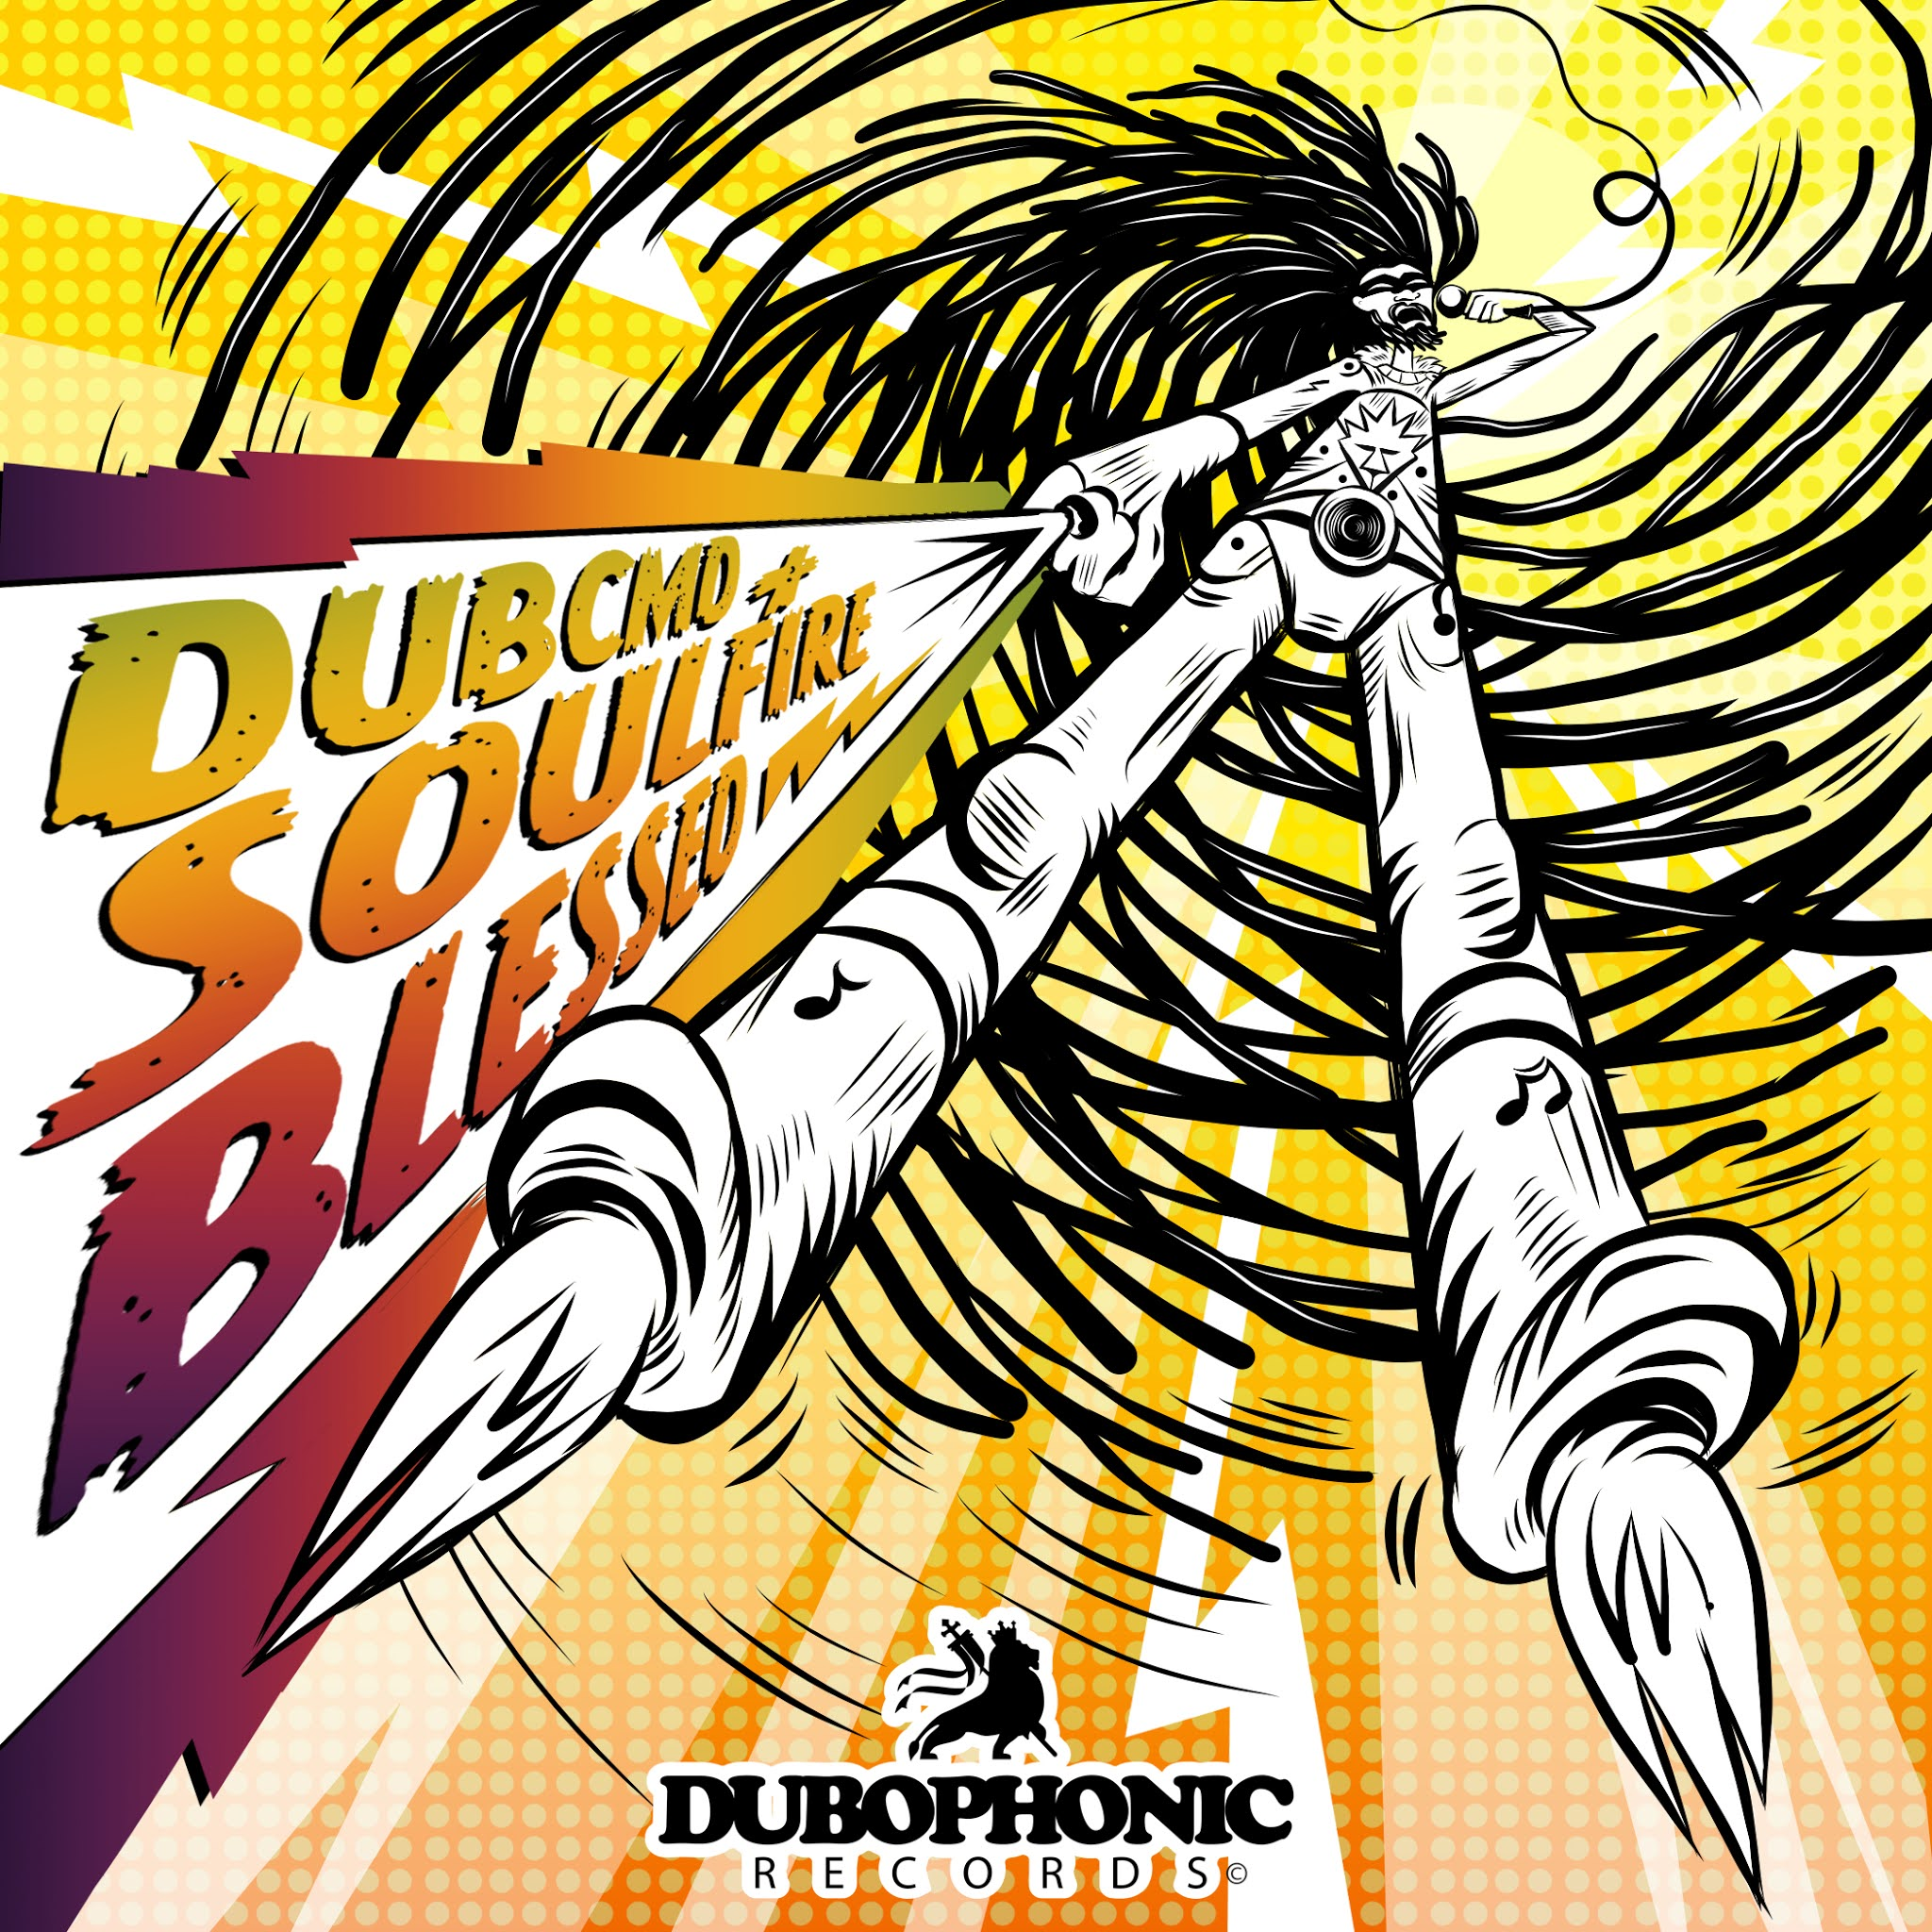 Dub Cmd & Soul Fire - Blessed / Dubophonic Records (c) (p) 2020